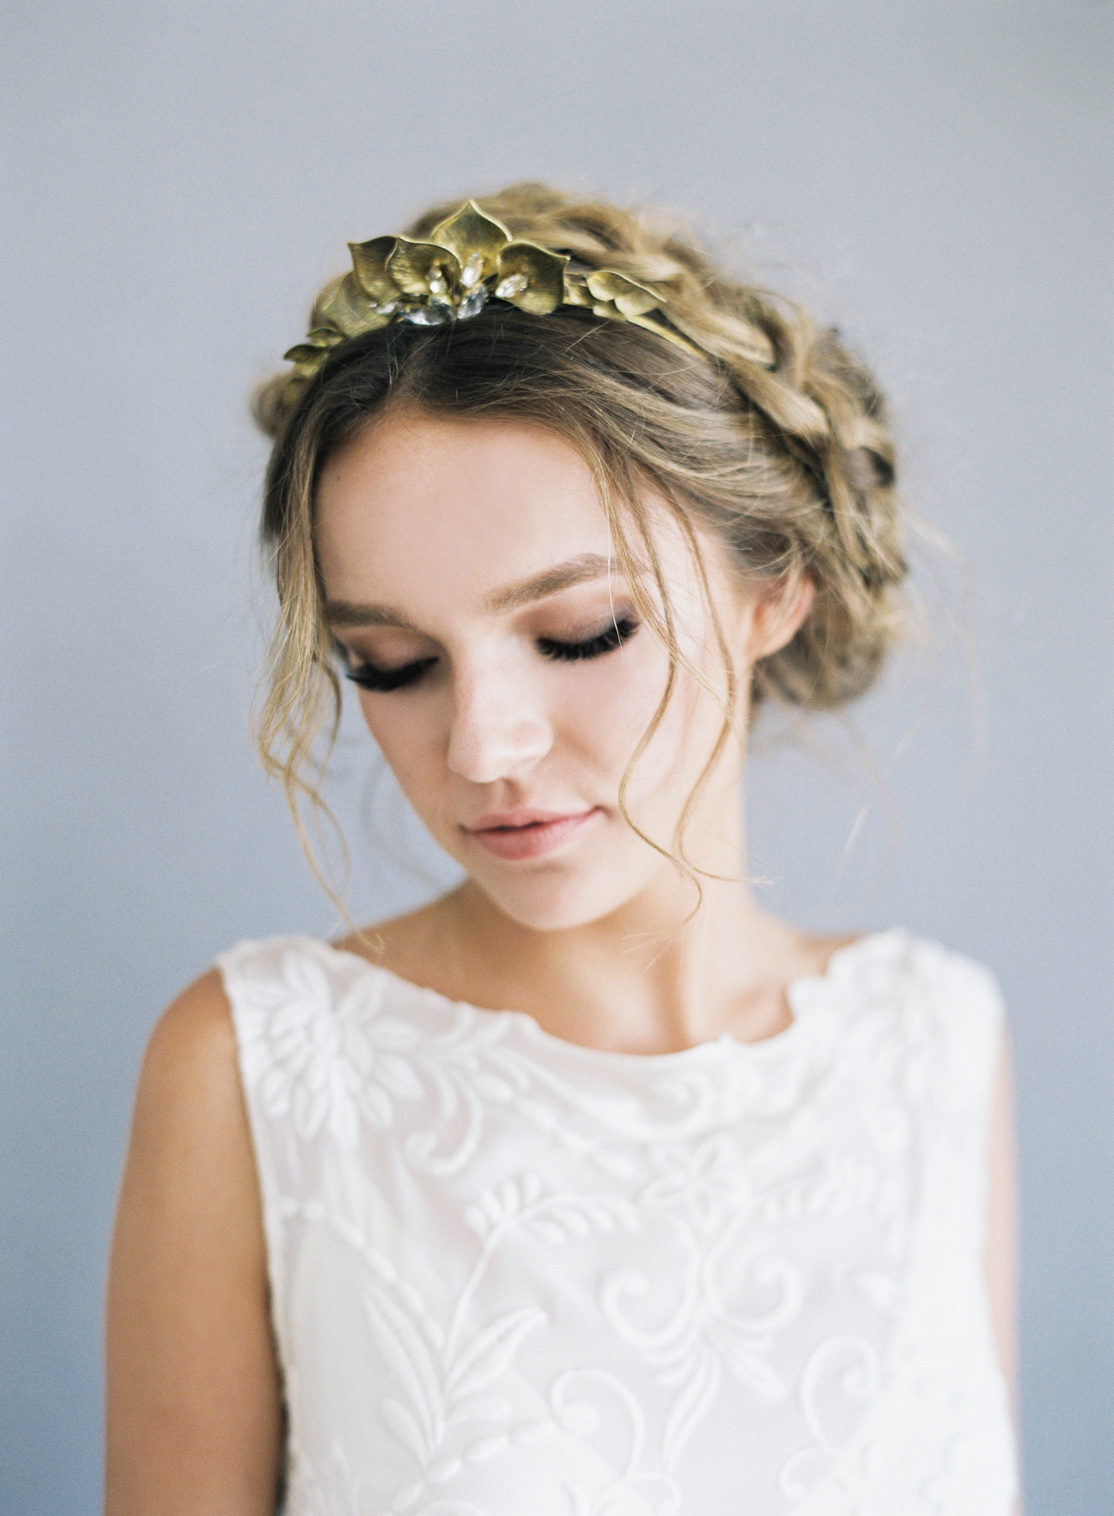 A boho inspired tiara with an herbal twist and just a bit of crystal - the Hushed Commotion   Quinn     tiara is loved by many HC brides and even better super easy to style in your wedding day hair!